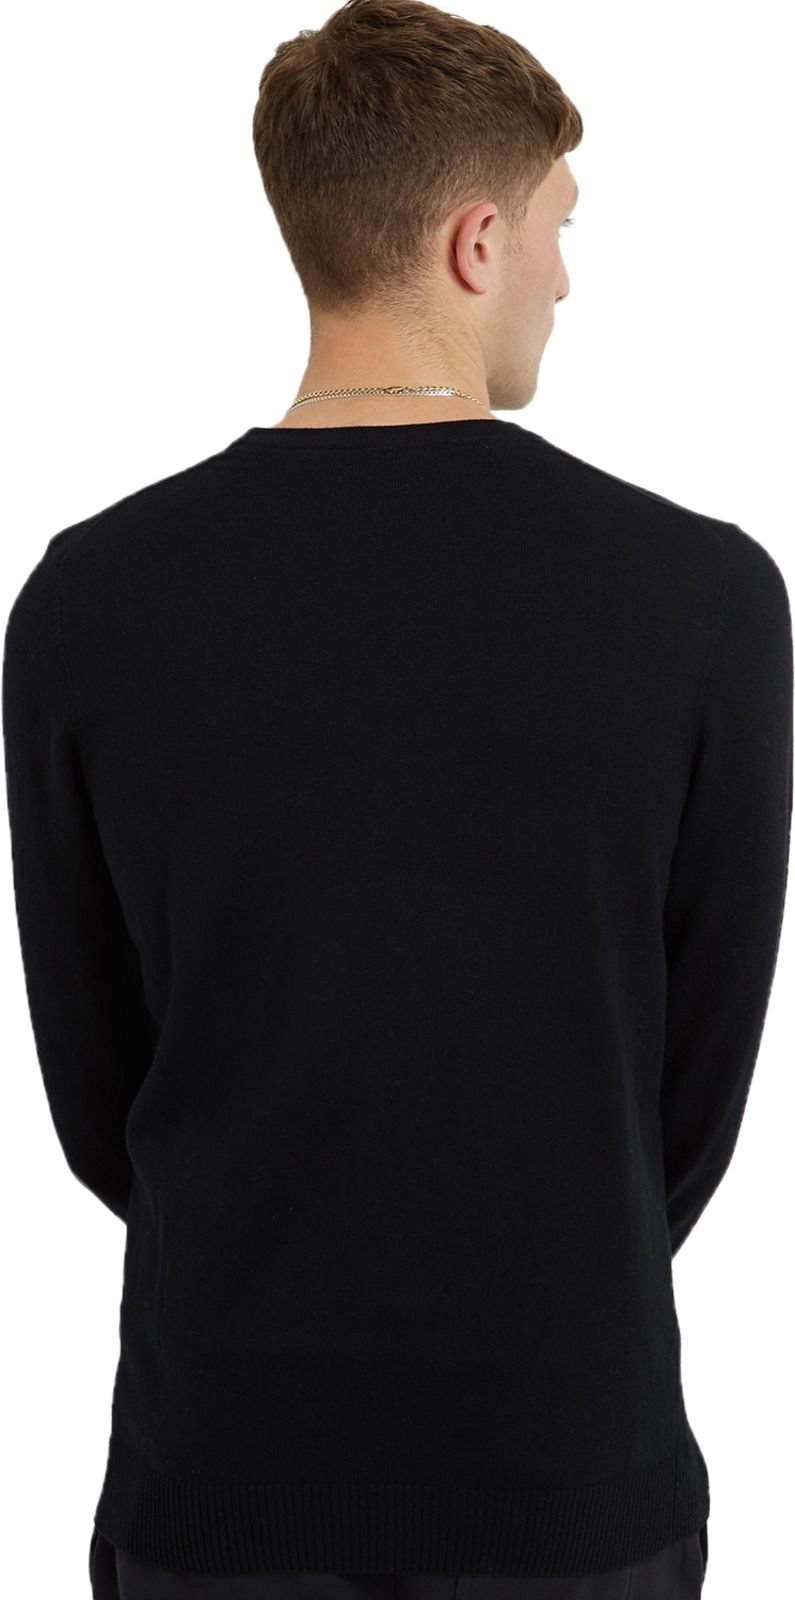 Lyle & Scott Merino Cotton Knit Jumper